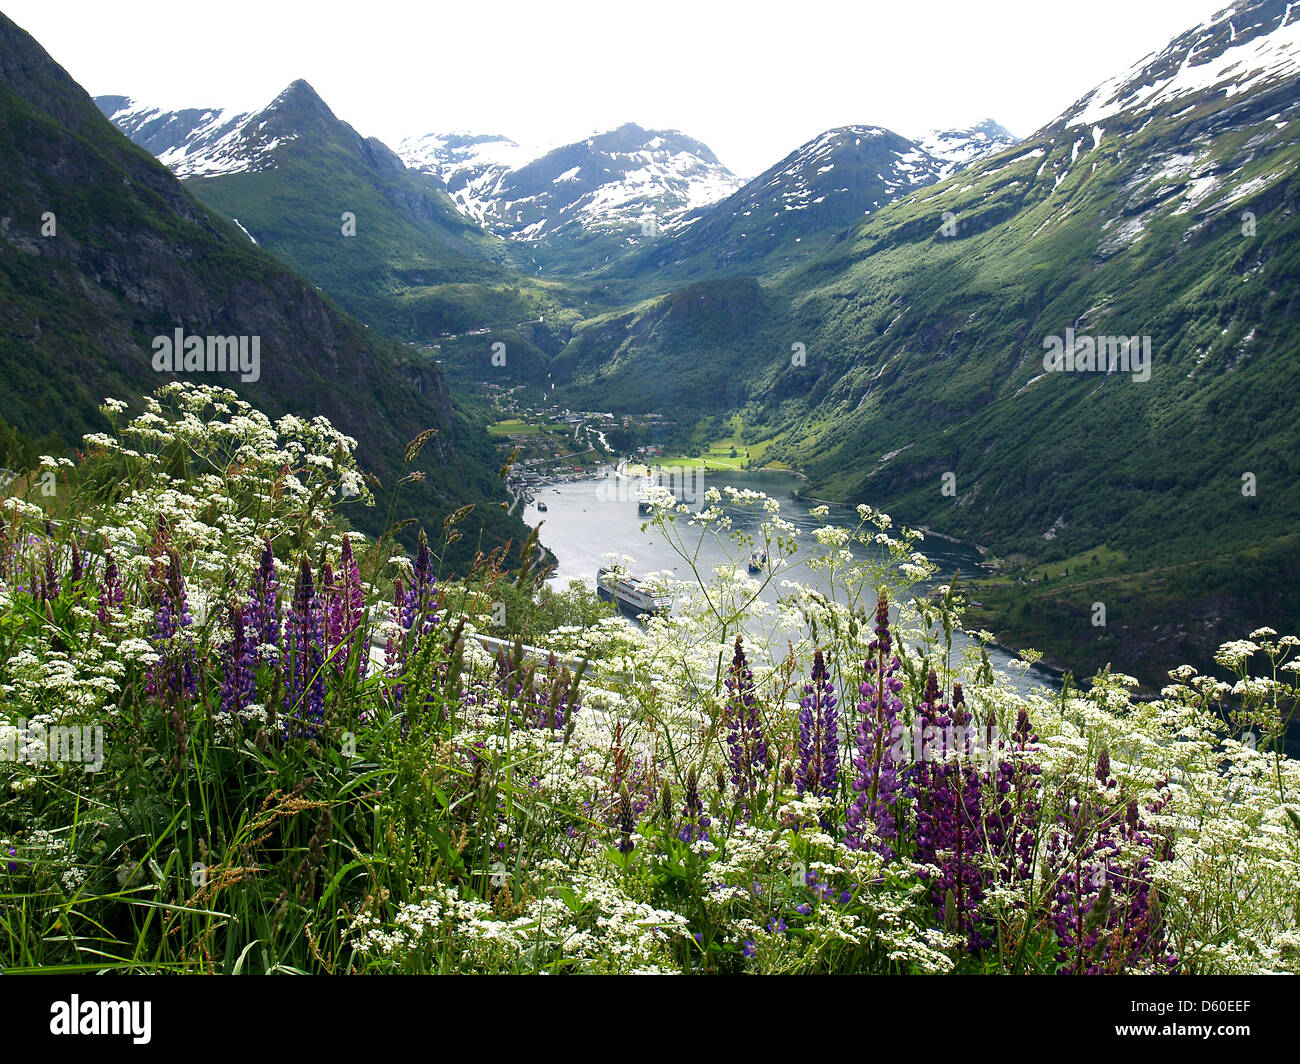 Wildflowers and lupines over the Geiranger Fjord,Norway - Stock Image